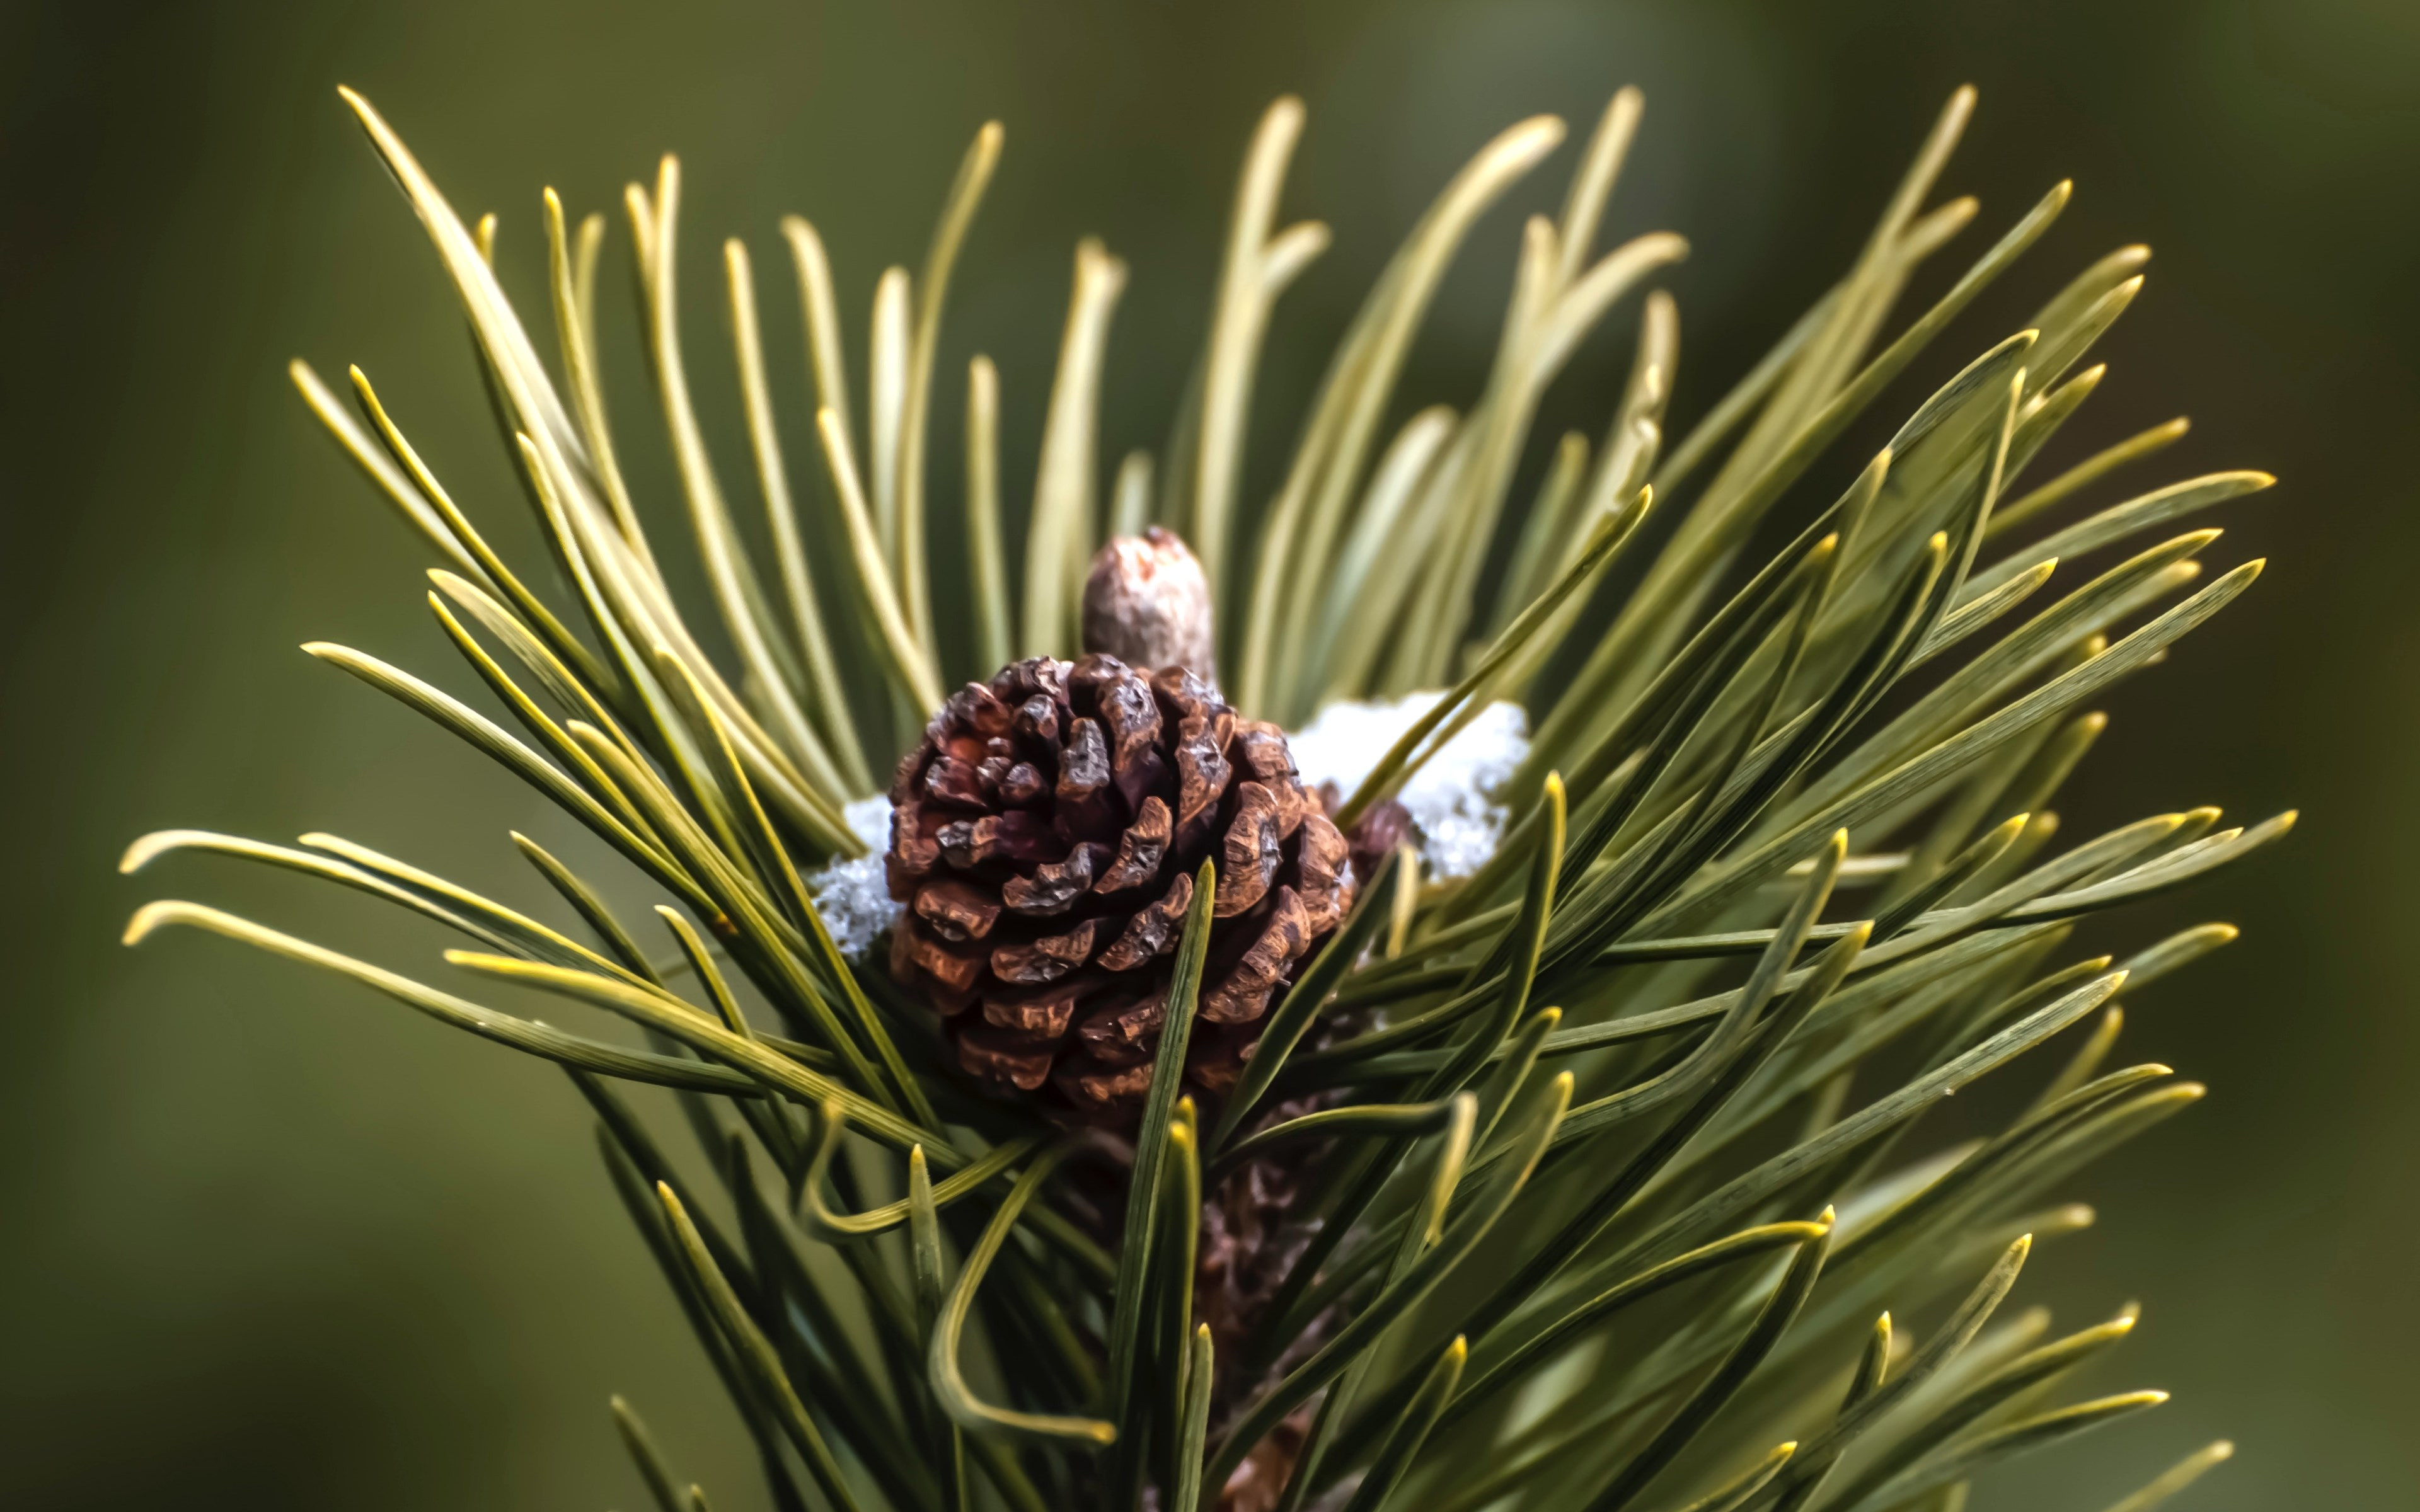 Cone and pine needles wallpaper 3840x2400